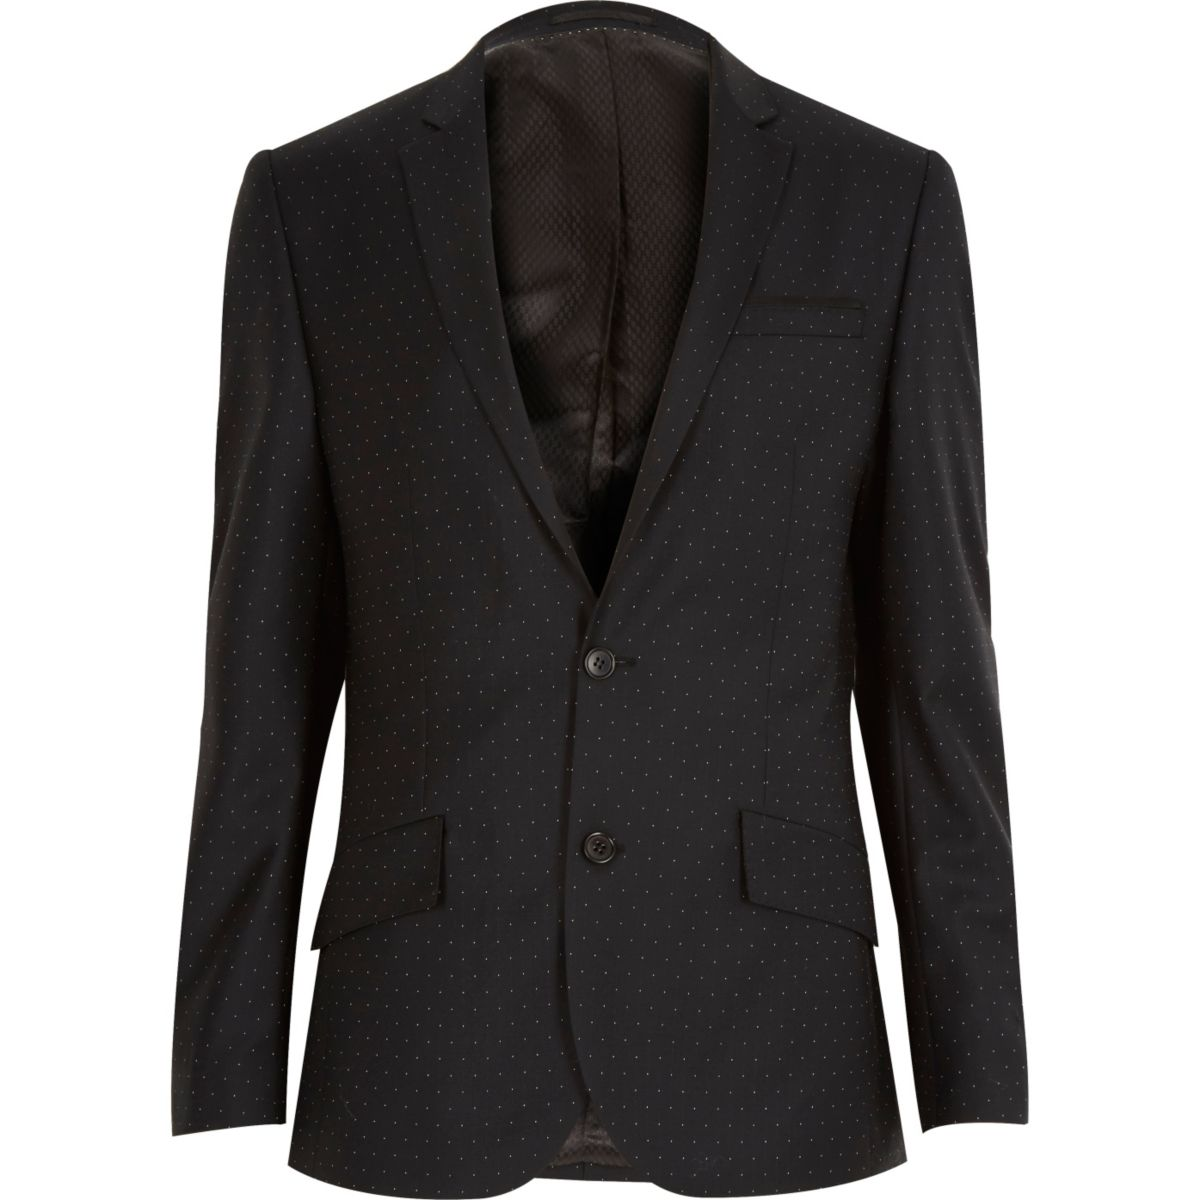 Black polka dot wool slim tux jacket